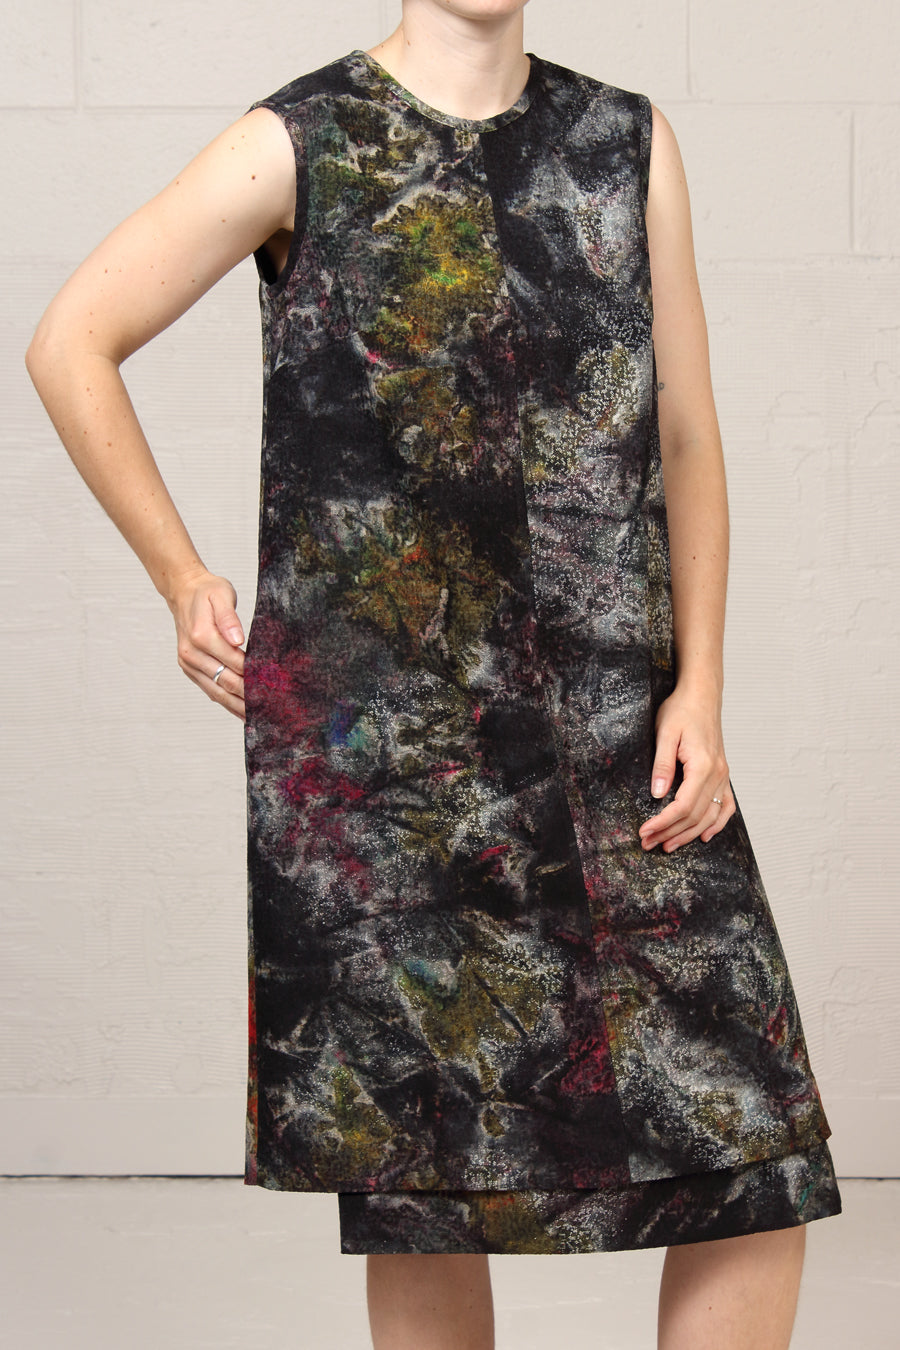 Topographic Jacquard Manning Dress - speckled - xsm, sml, lrg